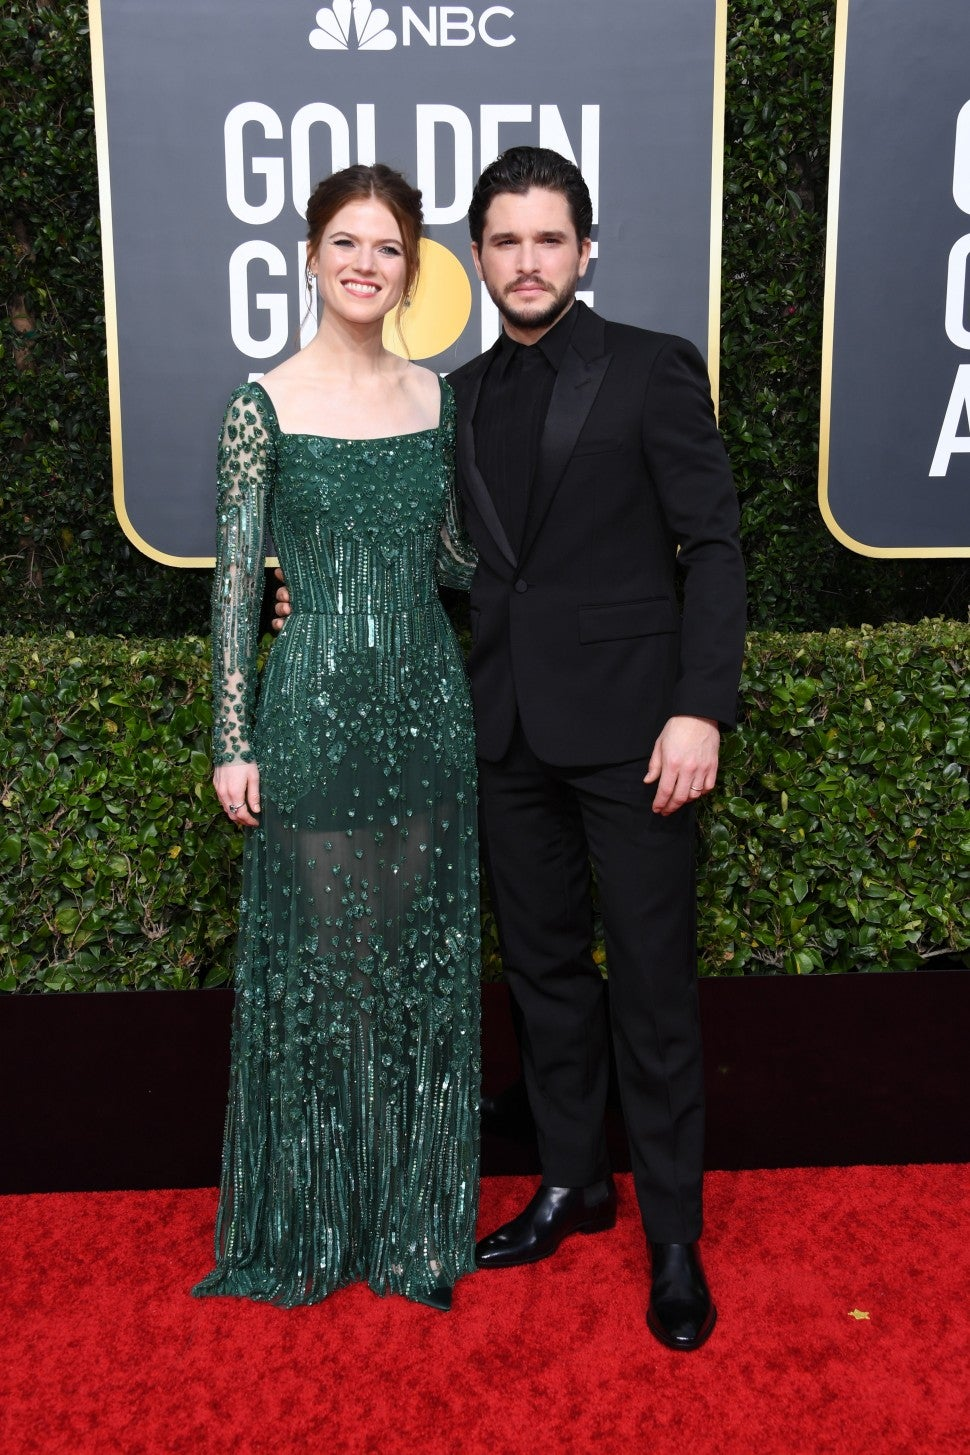 Rose Leslie and Kit Harington at the 2020 Golden Globes